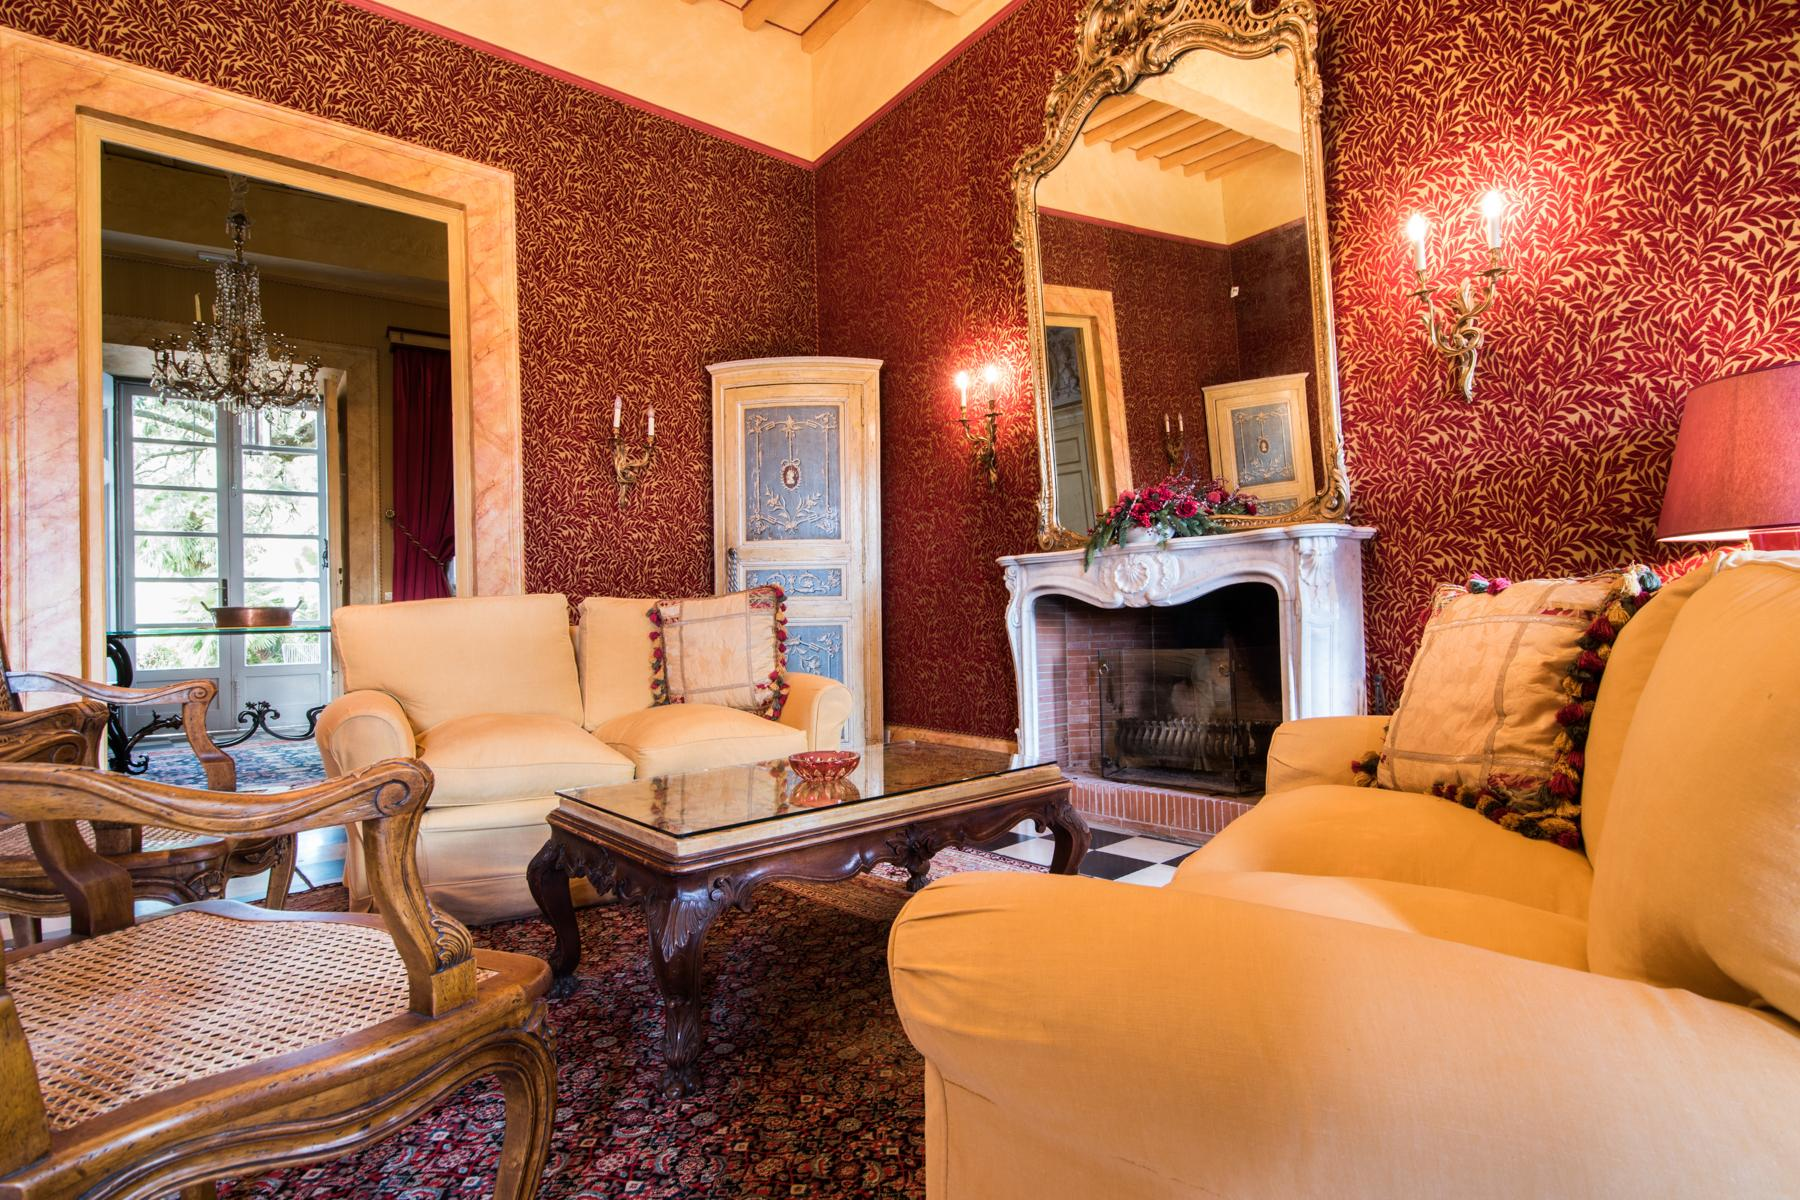 Marvelous villa in the countryside of Lucca - 7